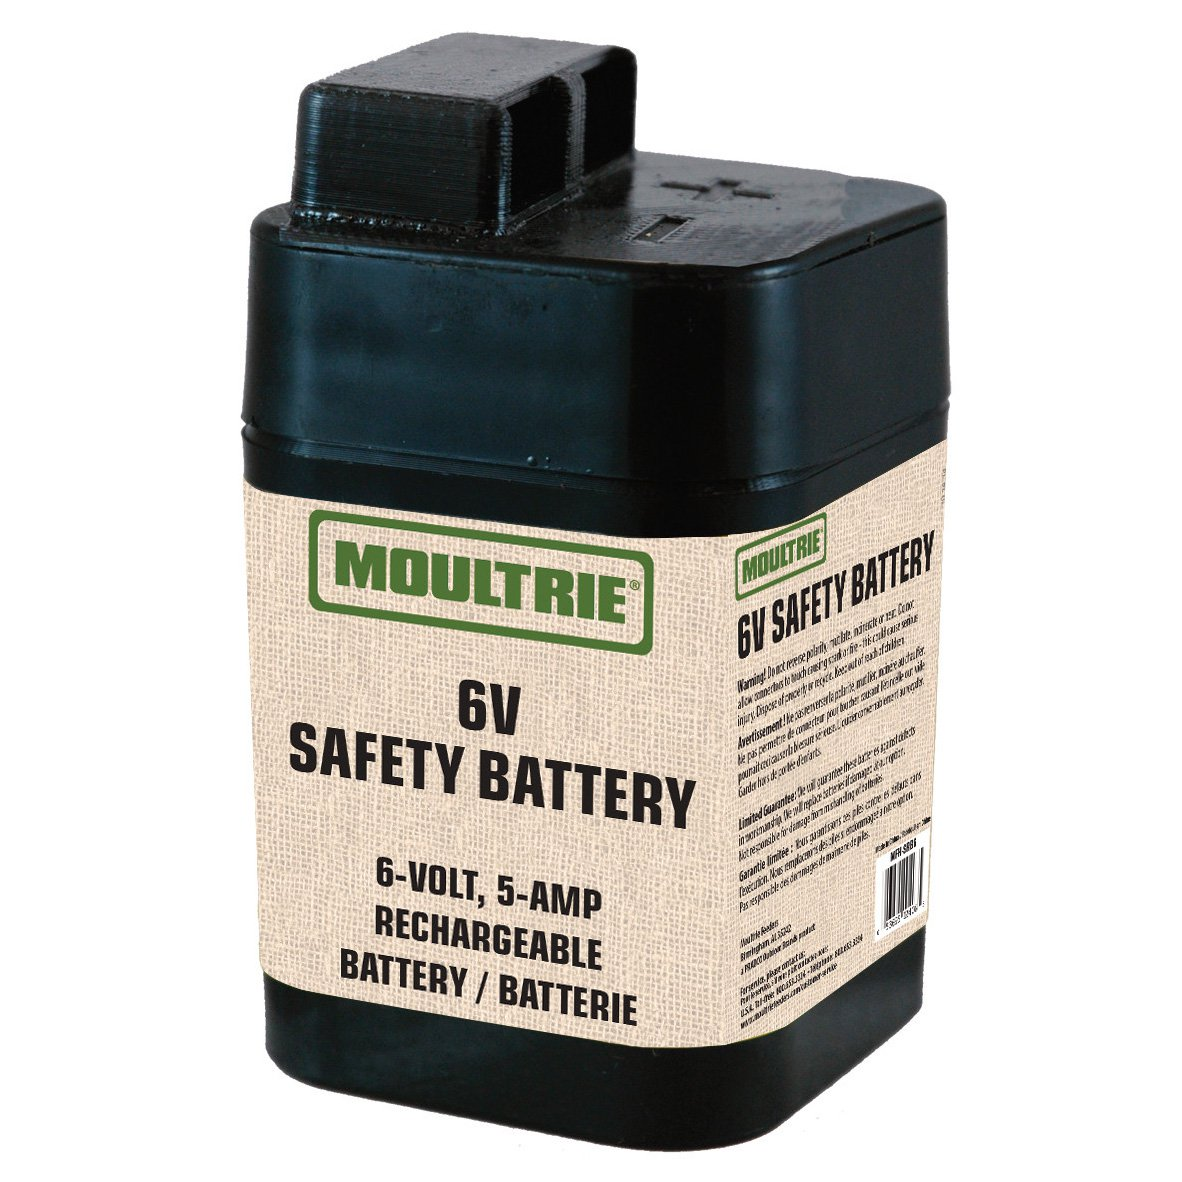 Moultrie 6 Volt Rechargeable Safety Battery for Automatic Deer Feeders MFHP12406